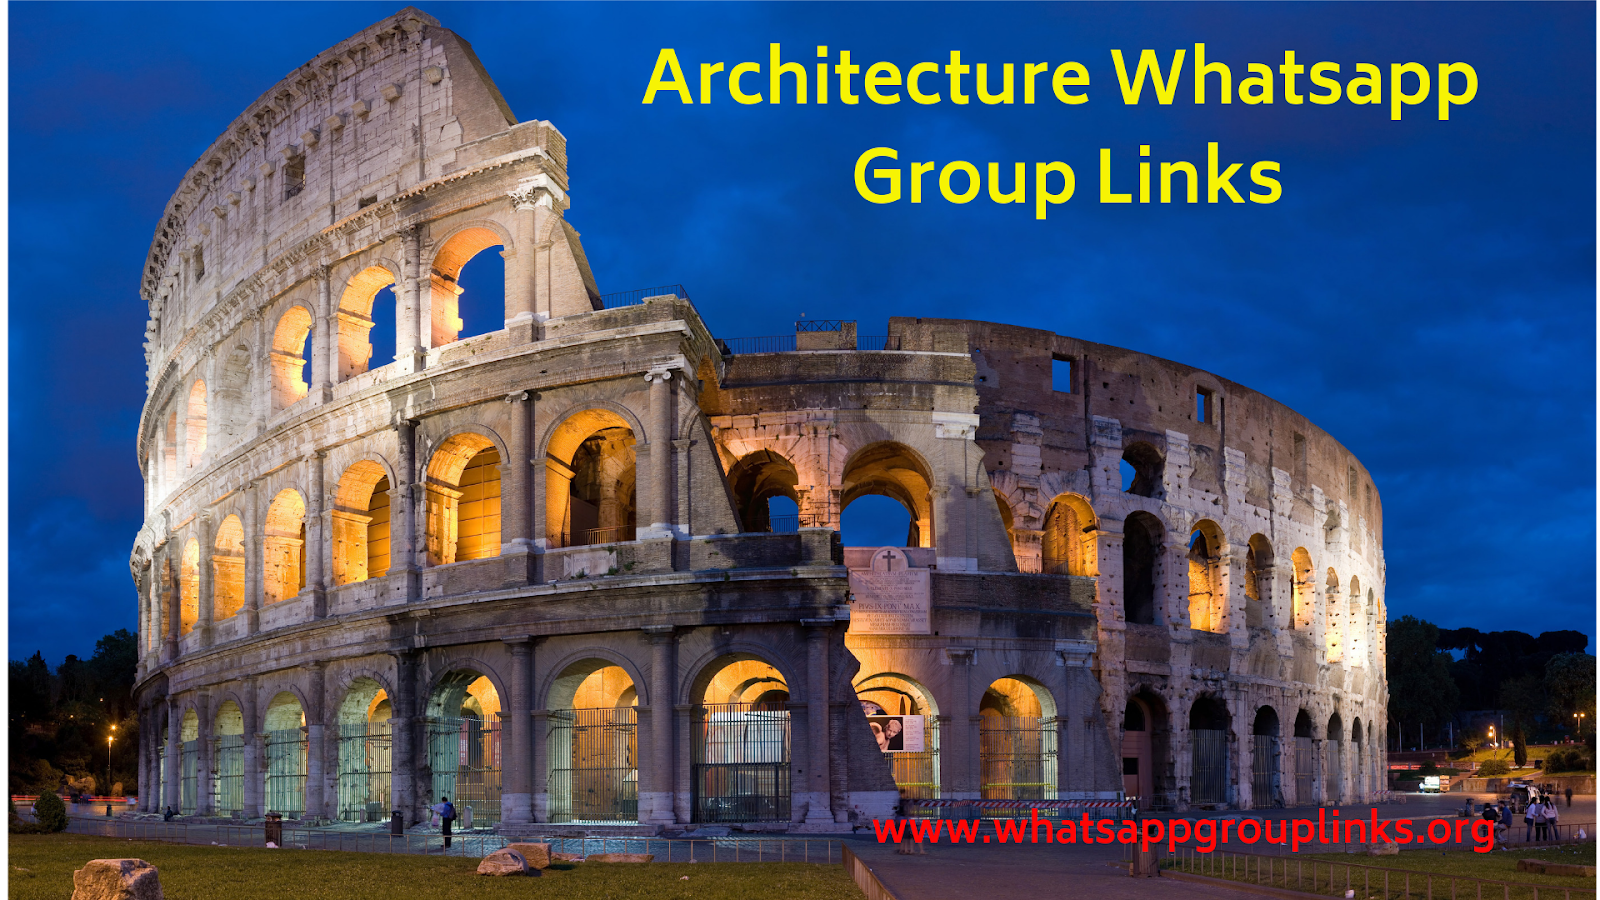 Join Architecture Whatsapp Group Links List Whatsapp Group Links